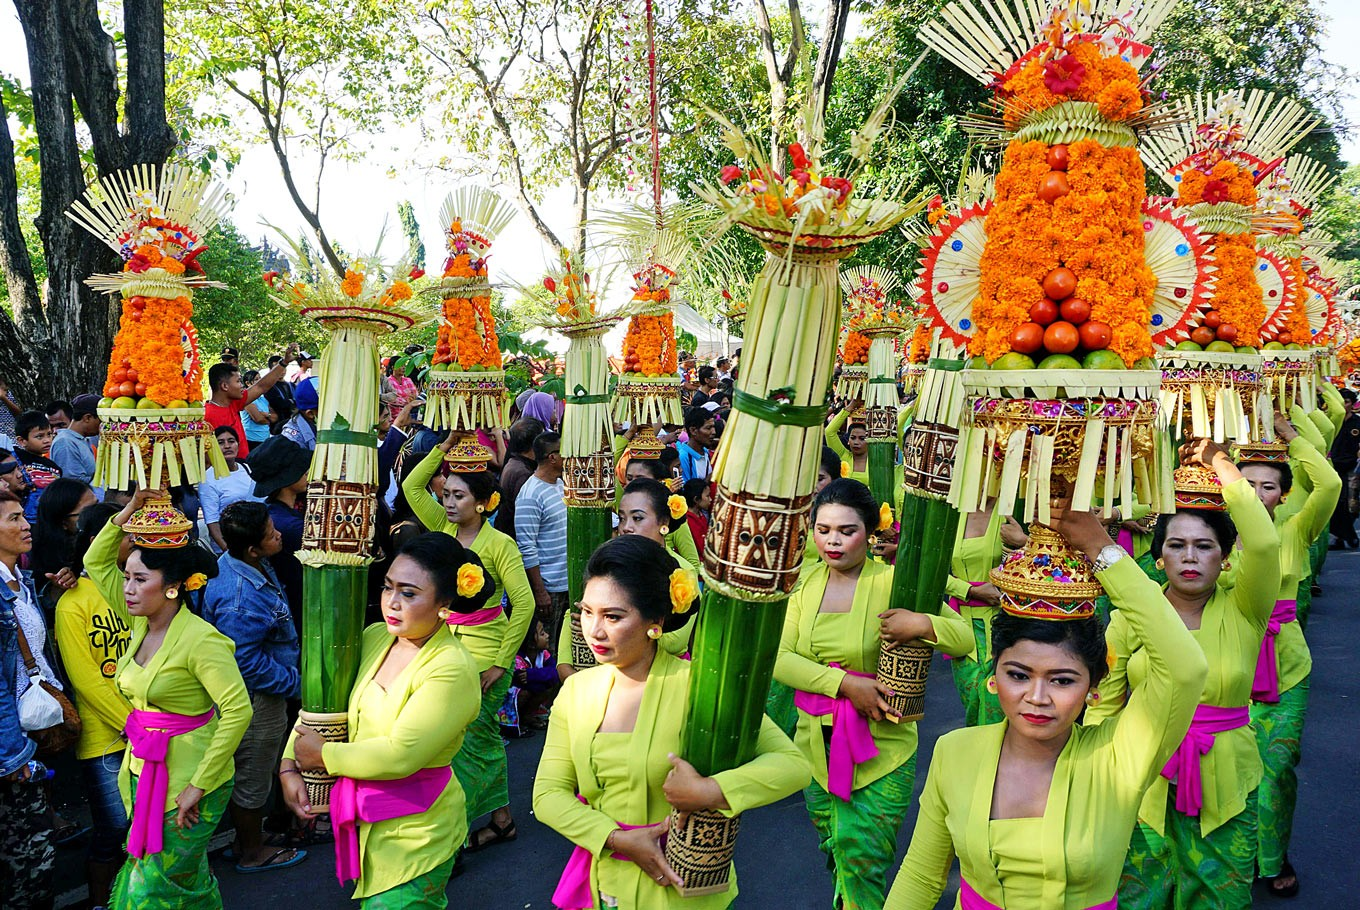 Bali Arts Festival: Ensures relevance of island's traditional arts